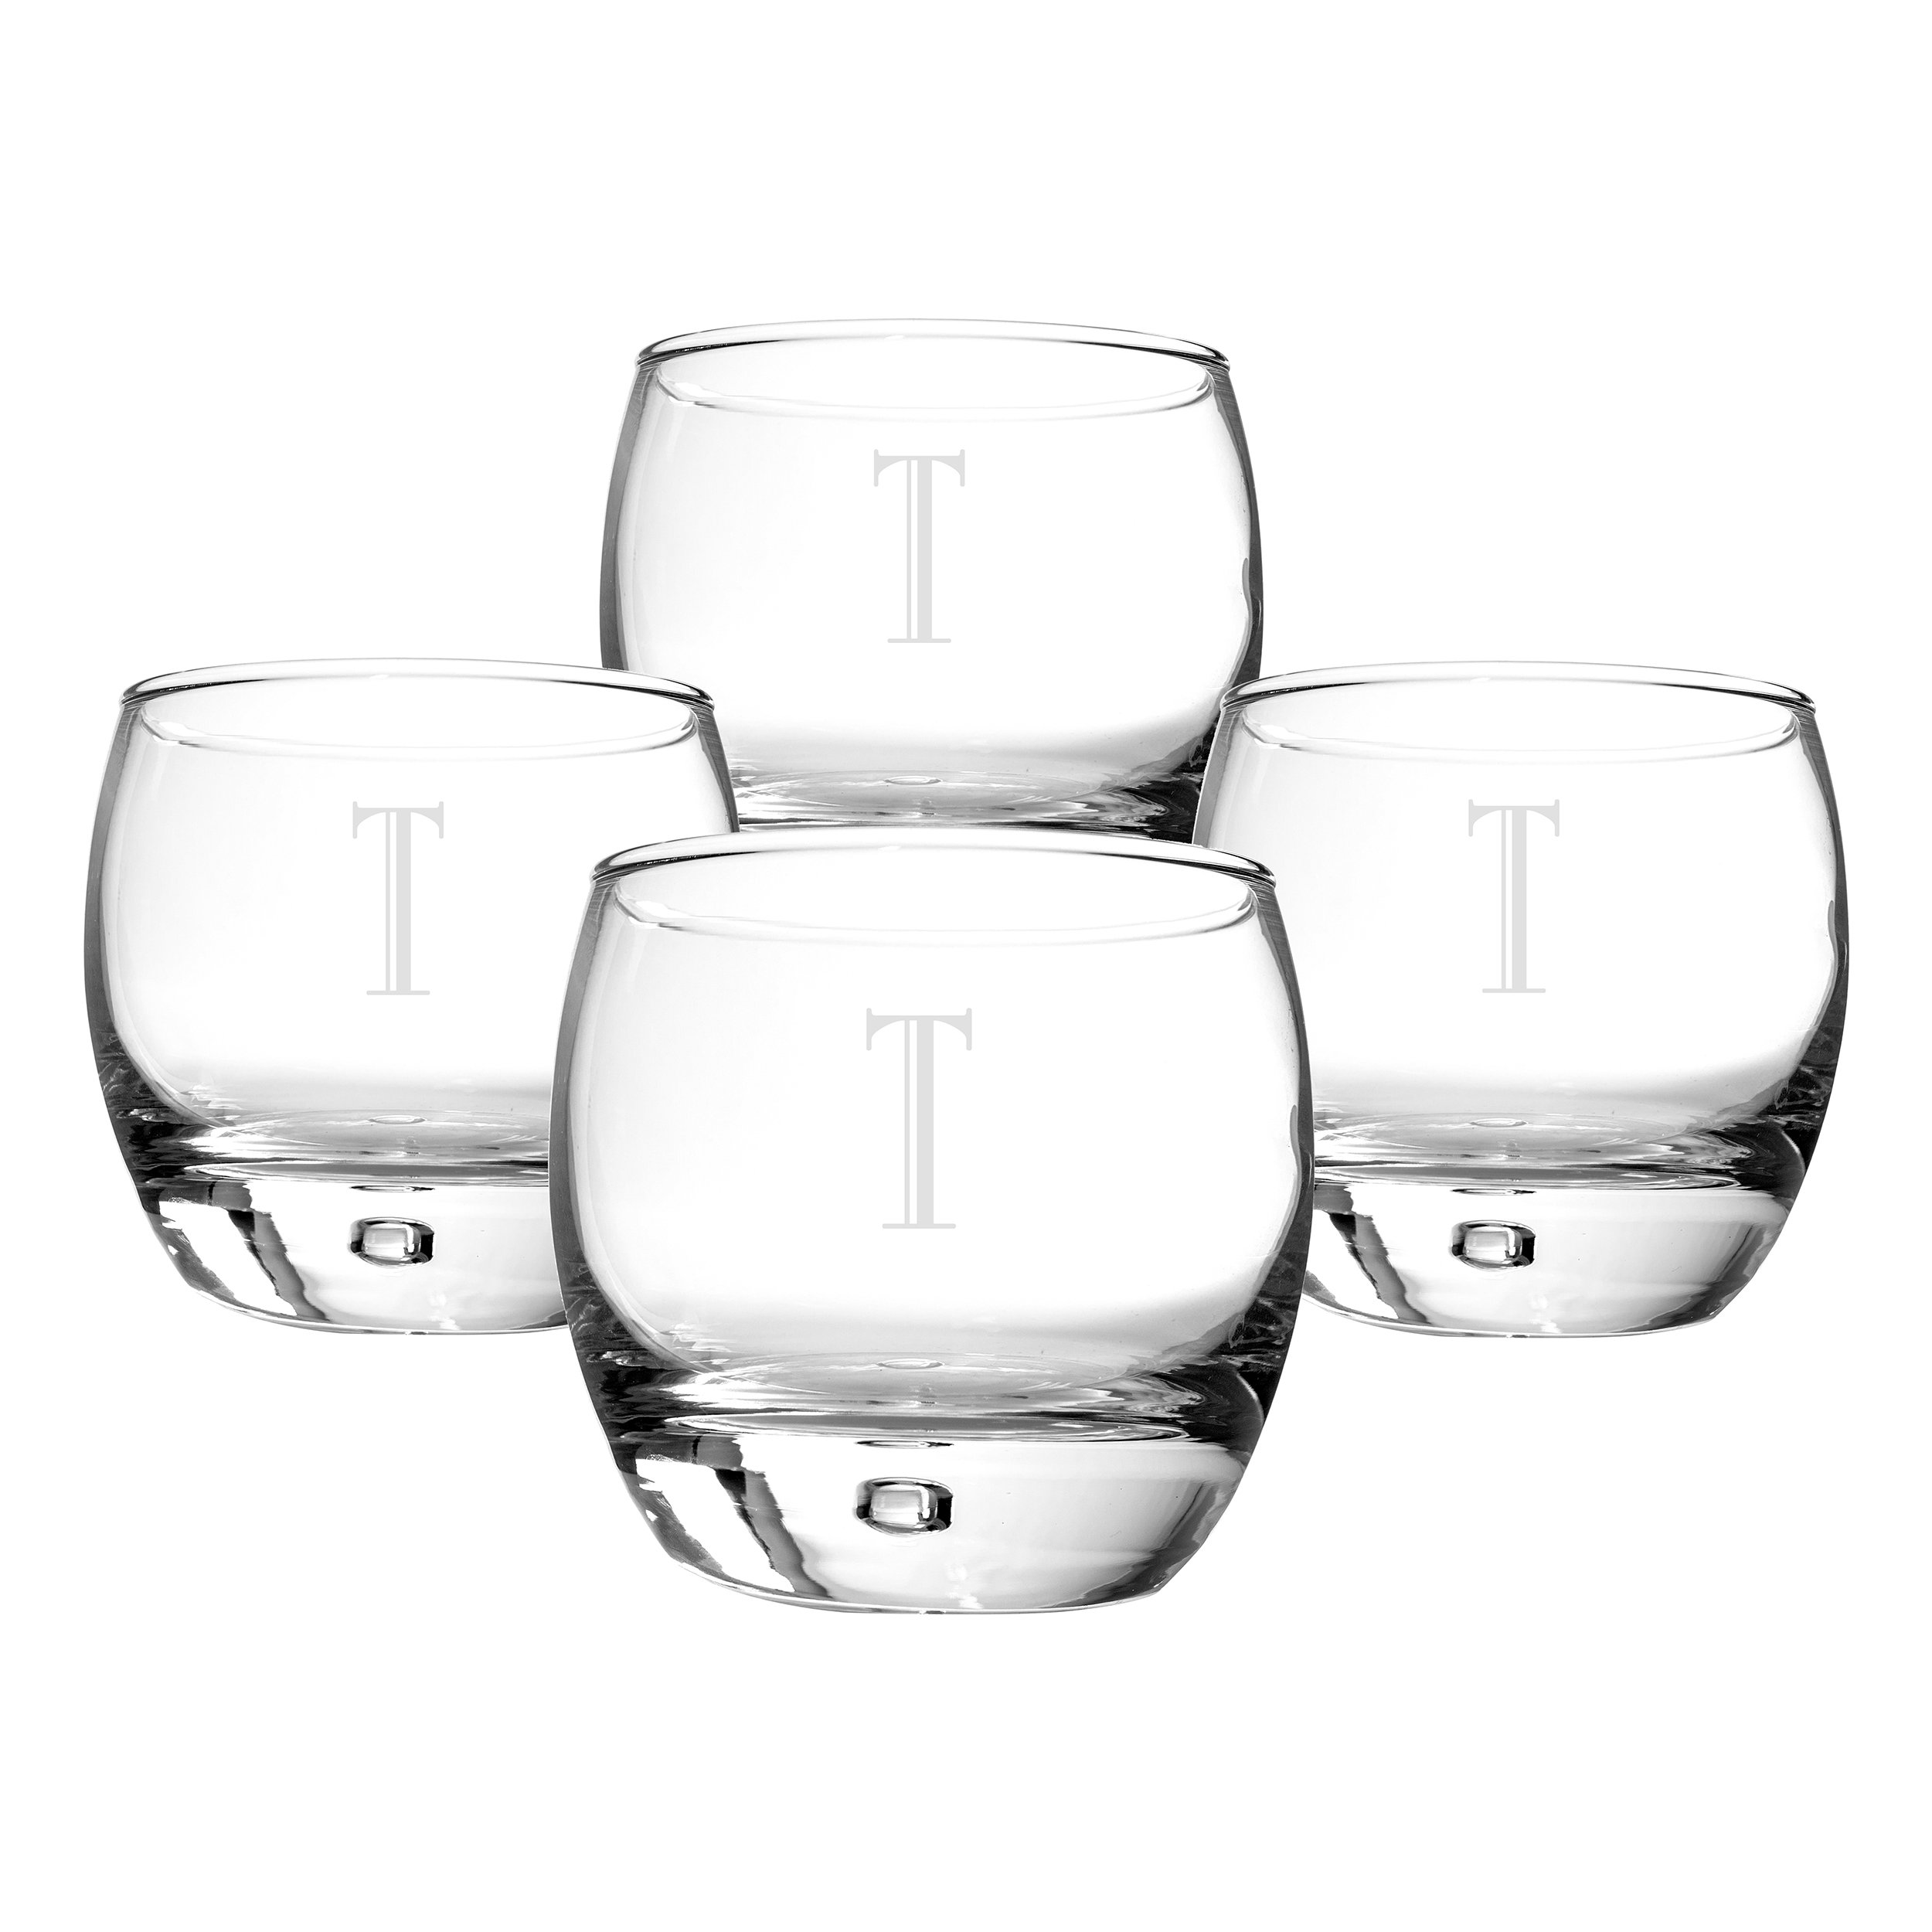 Cathy's Concepts Personalized Heavy Based Whiskey Glasses, Set of 4, Letter T